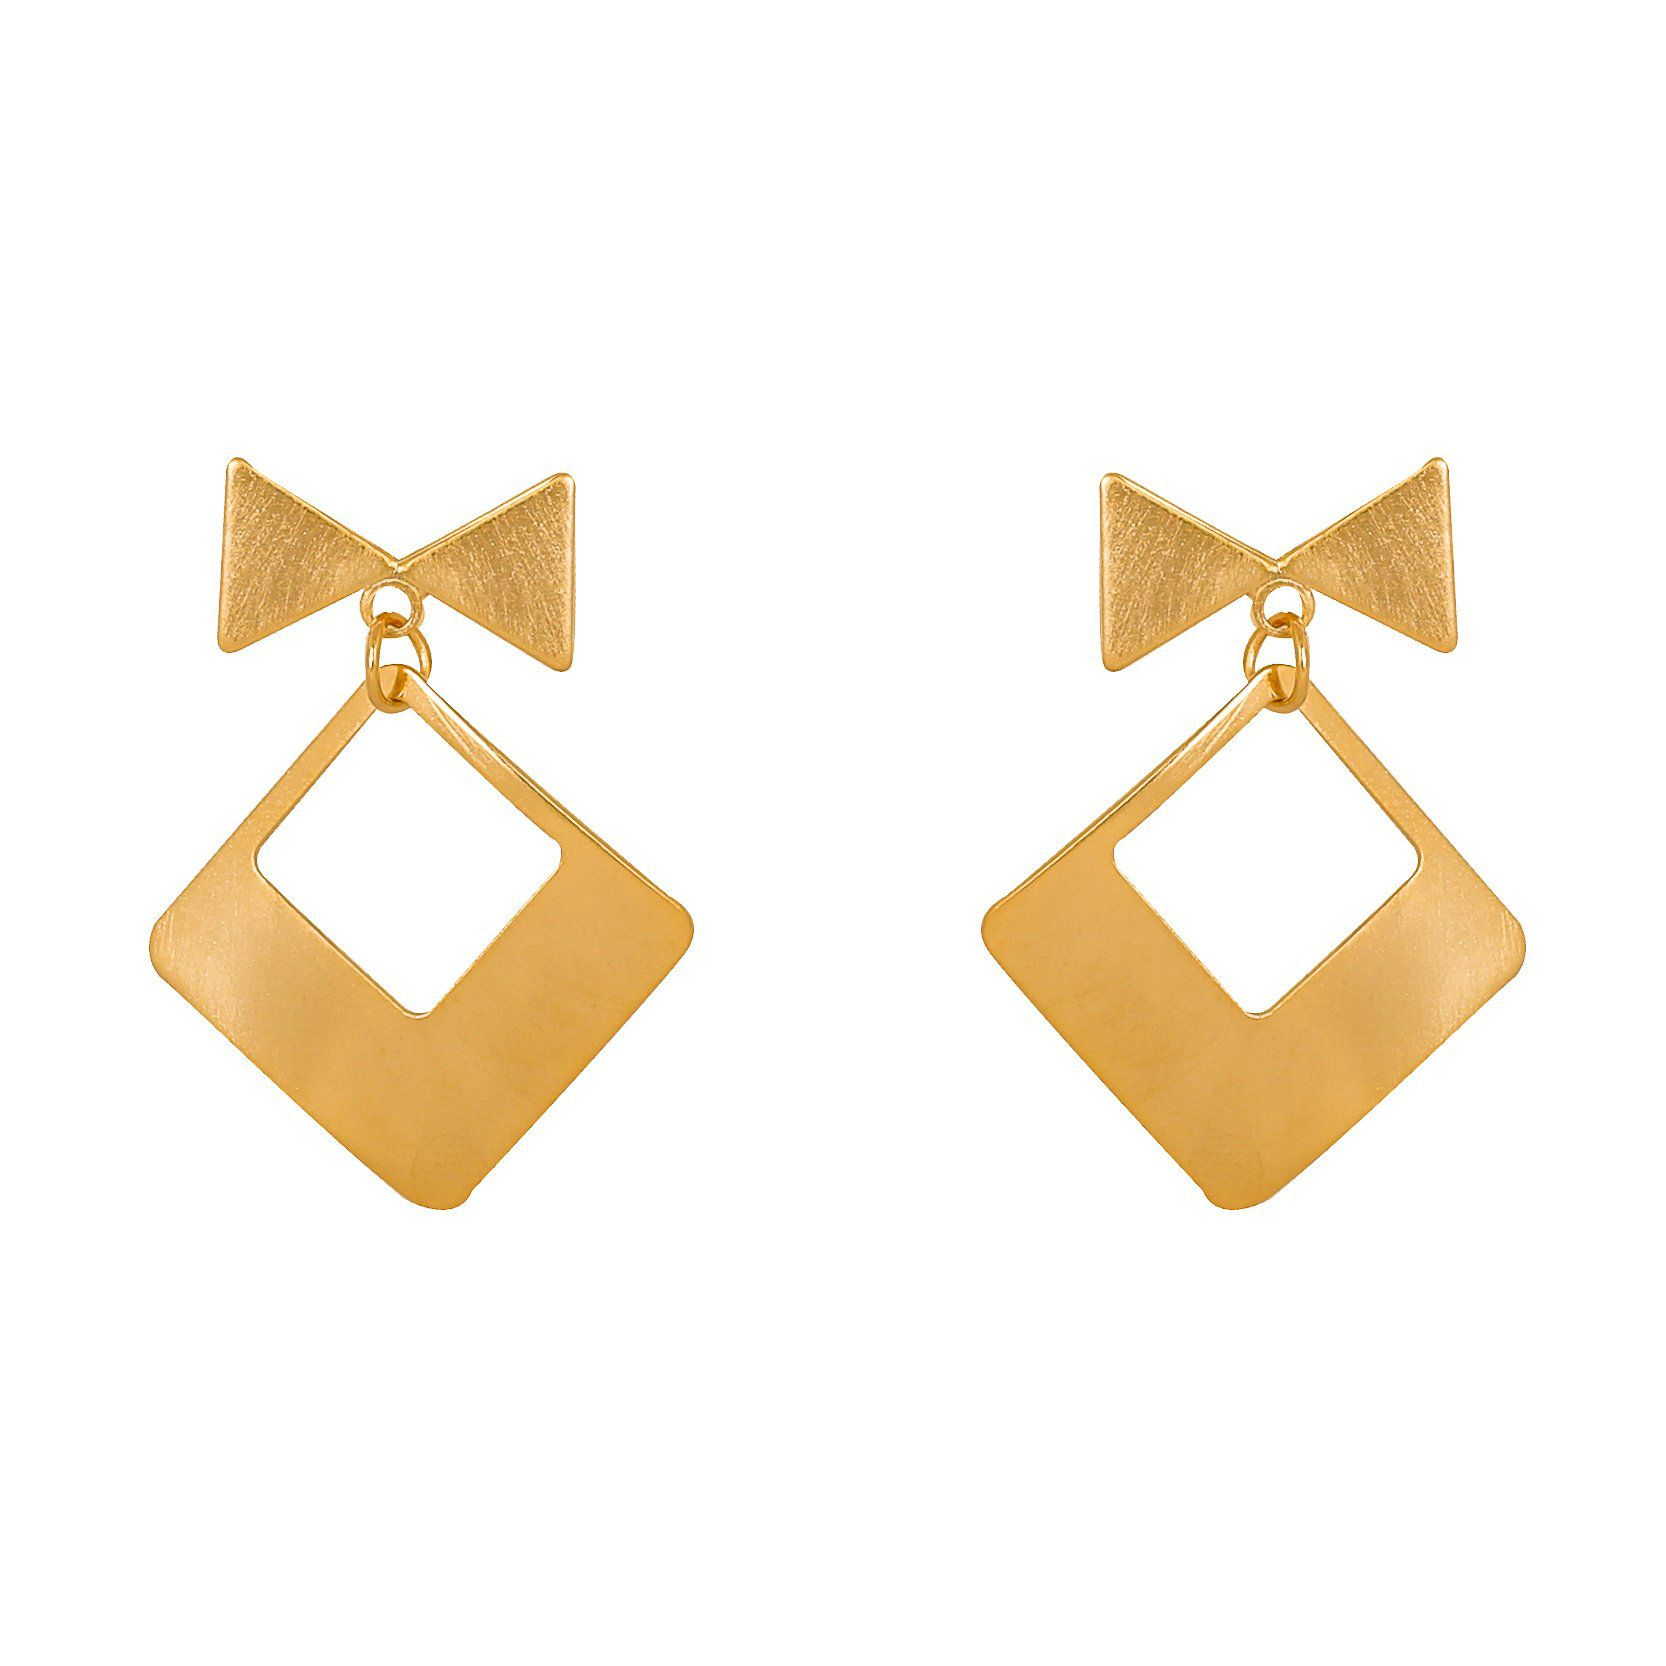 Bling Style Rhombus Bow Earrings